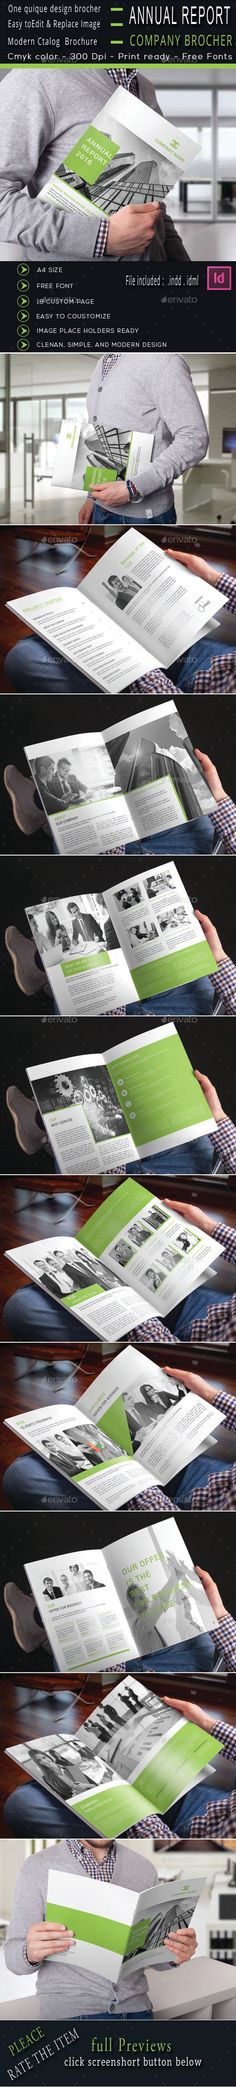 Annual Report Page 21 (Marketing Manageru0027s Report) Would you like - annual report templates free download